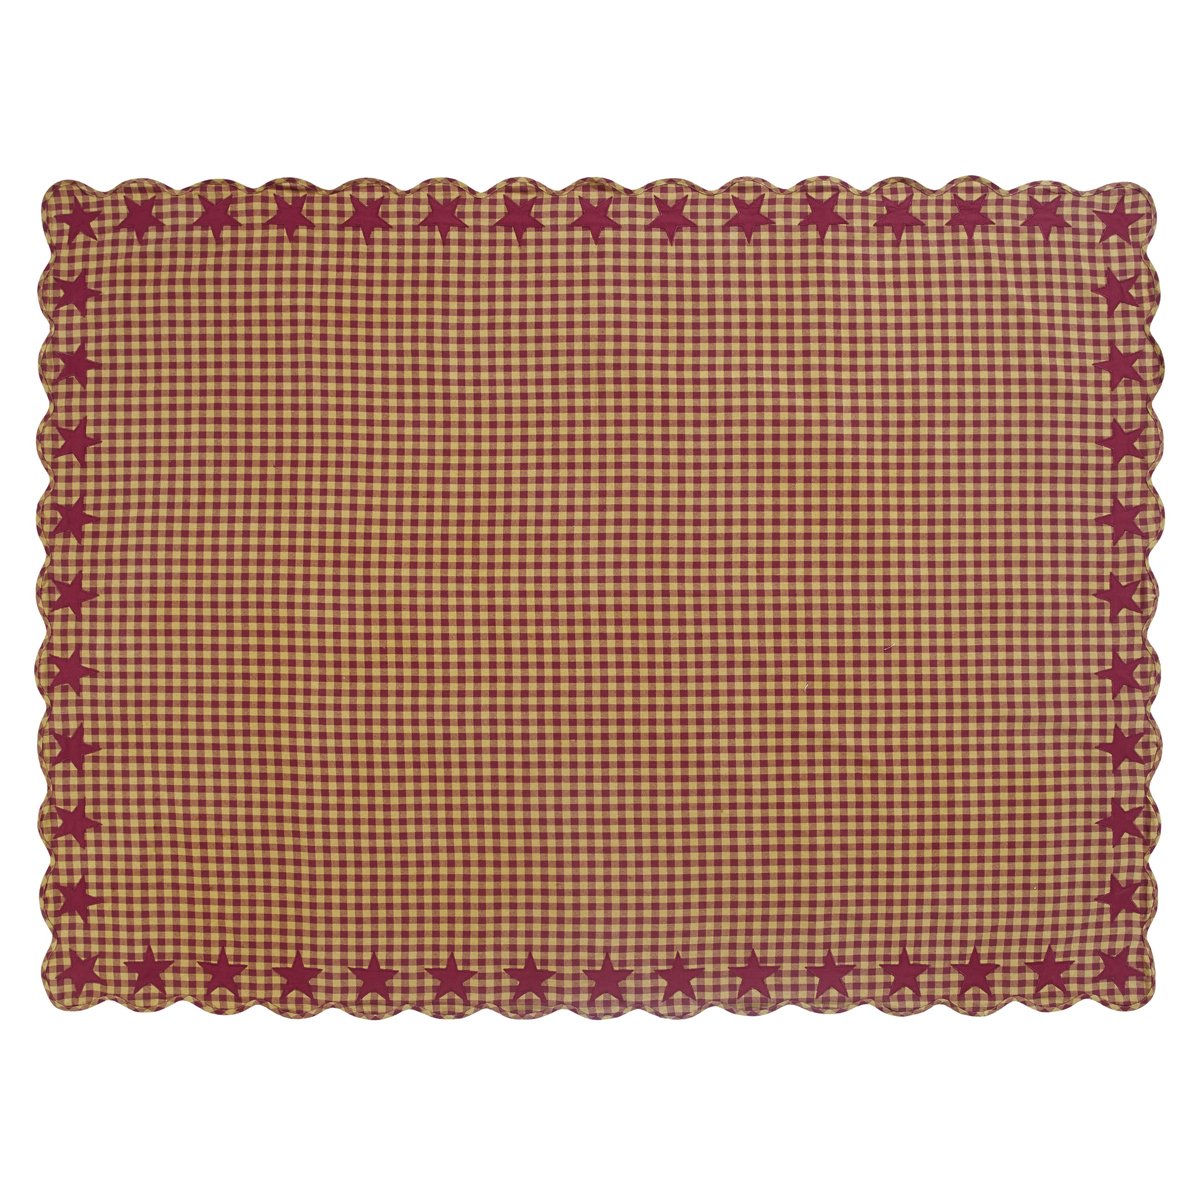 BURGUNDY Star Scalloped Table Cloth - 60x80 - Burgundy/Dark Tan - VHC Brands